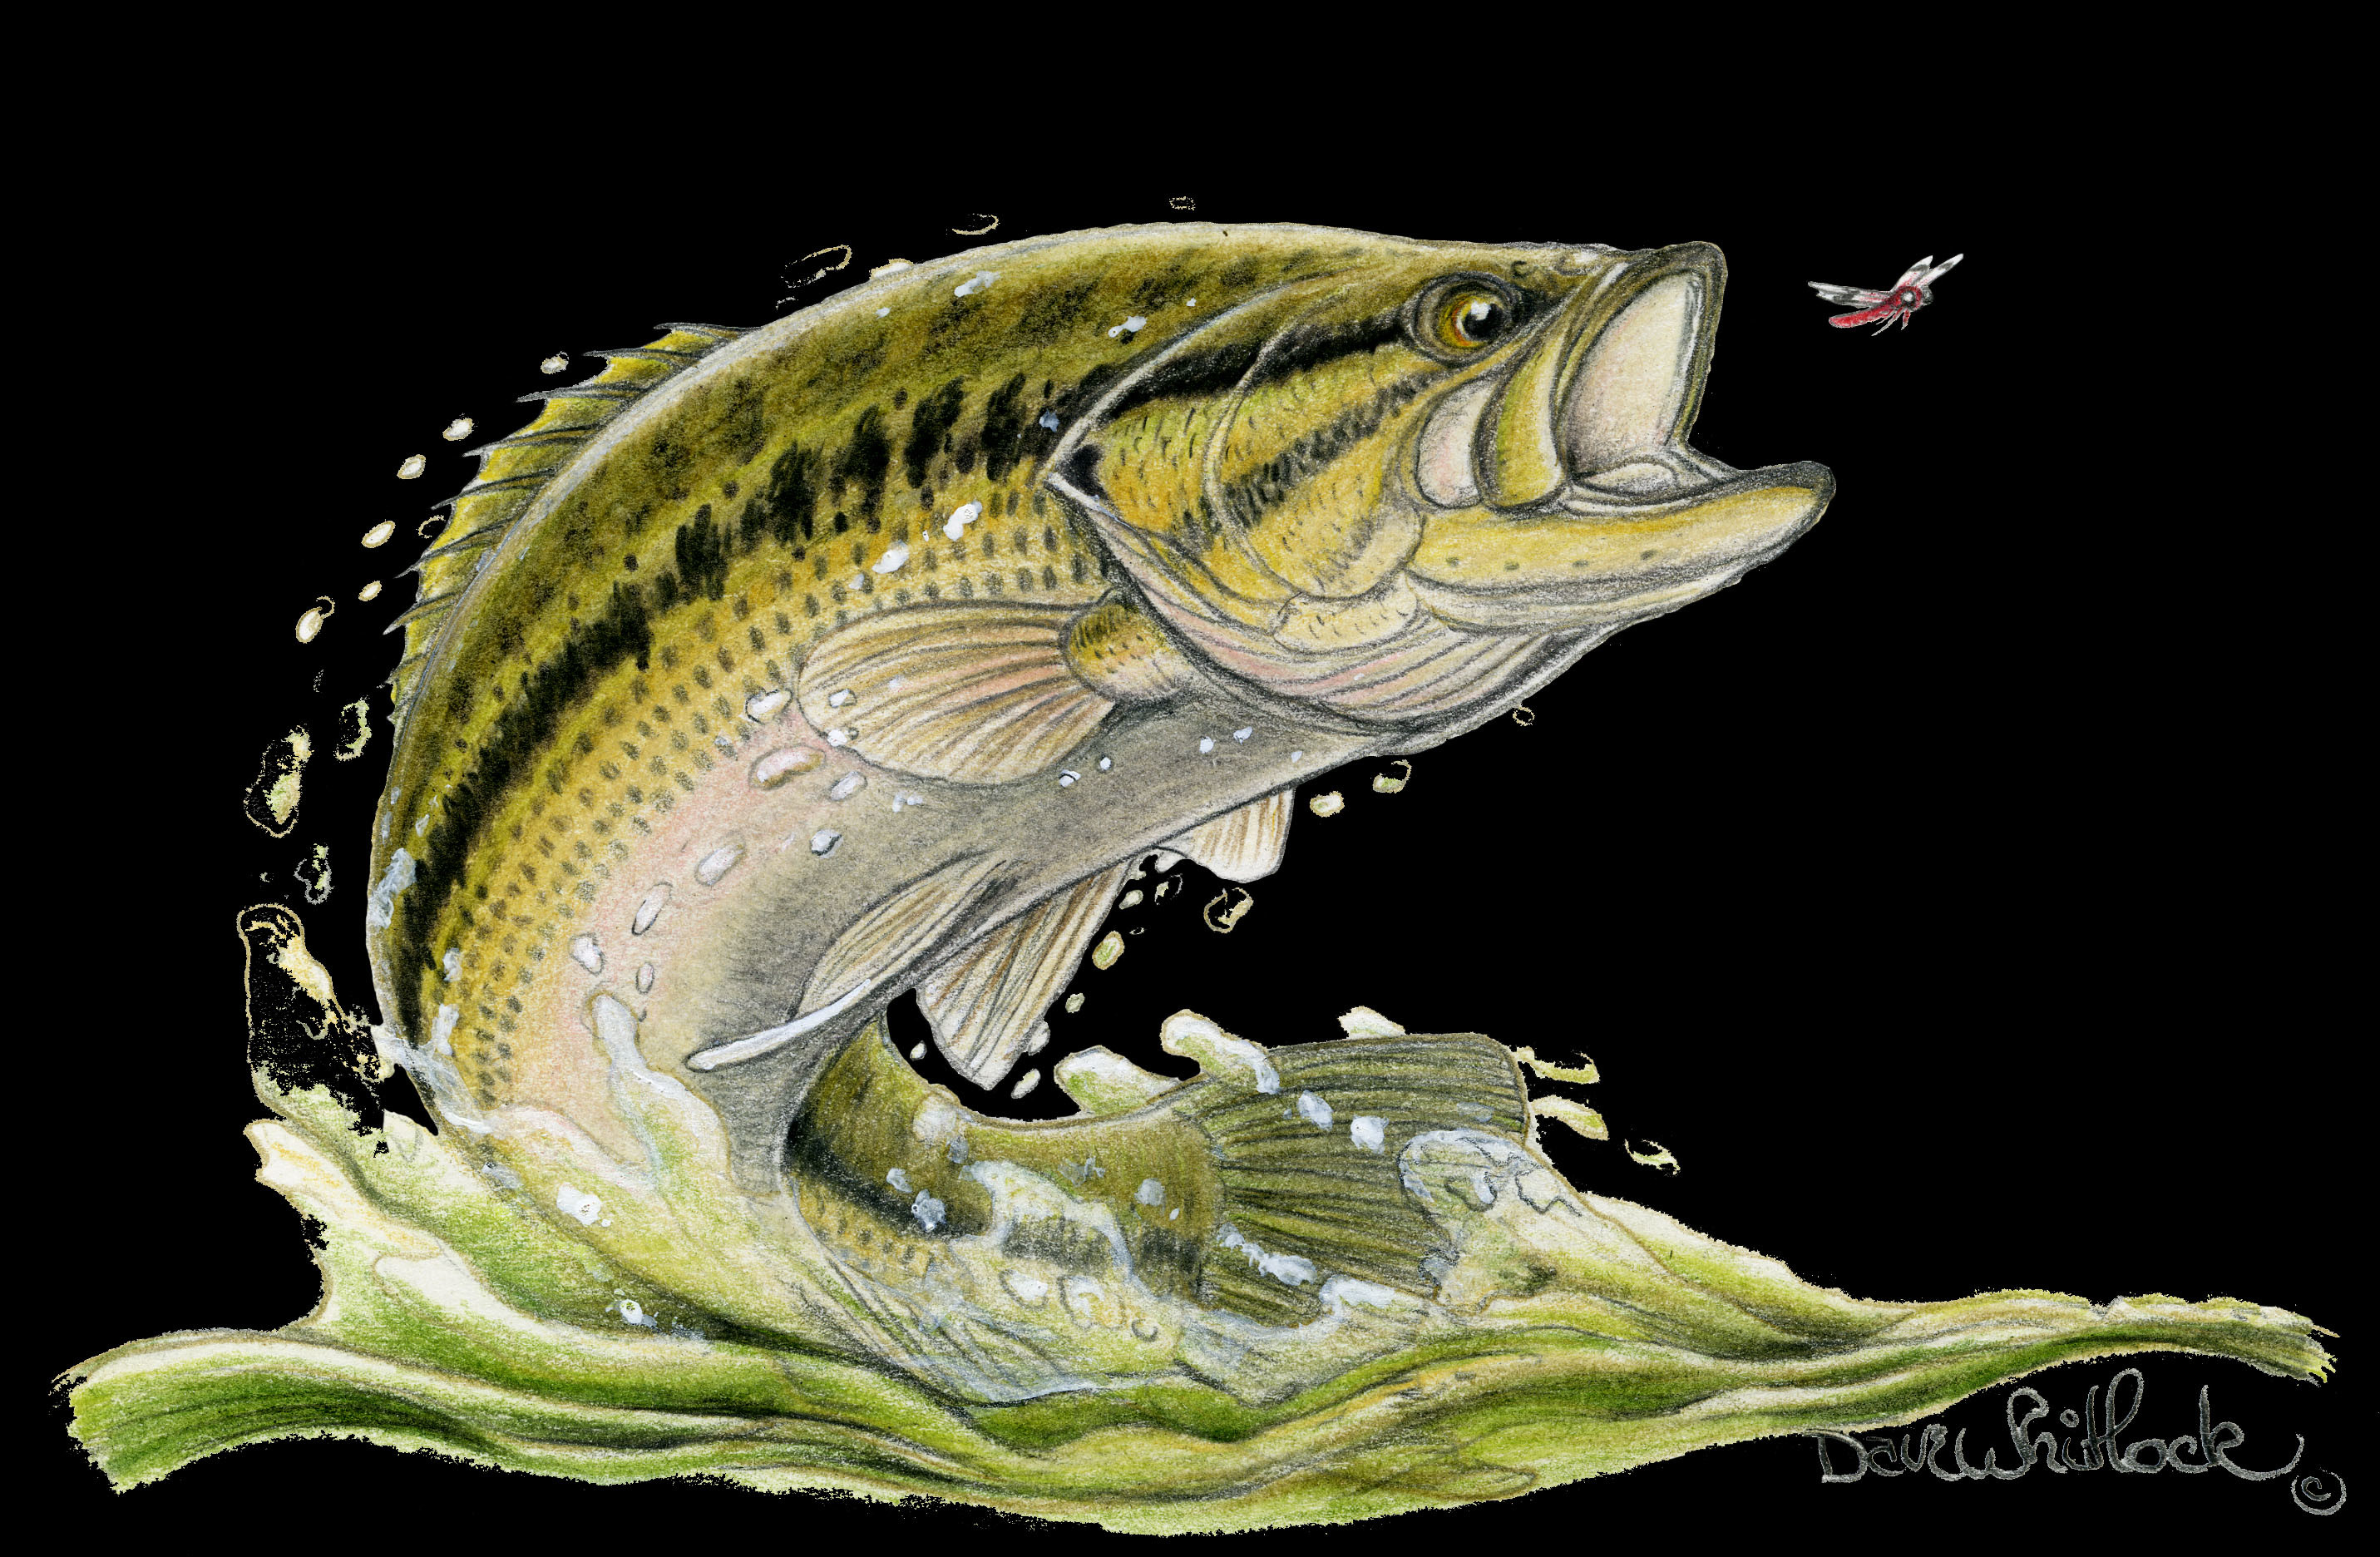 Herbicides likely source of growing intersex fish problem